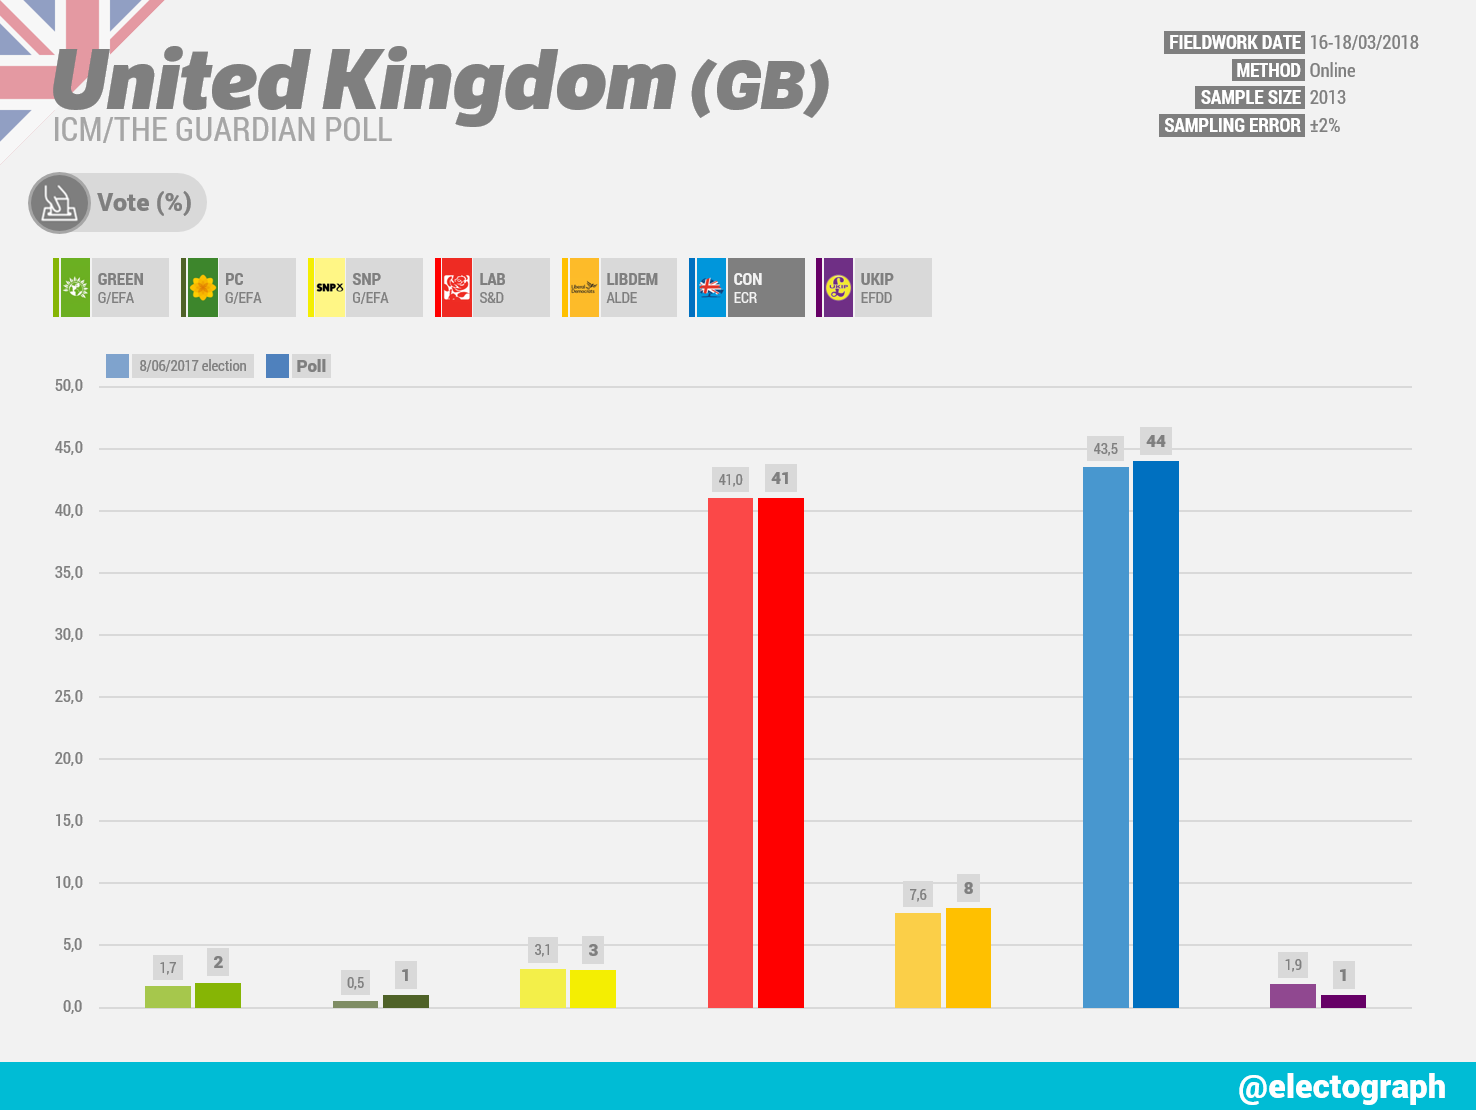 UNITED KINGDOM ICM poll chart for The Guardian, March 2018